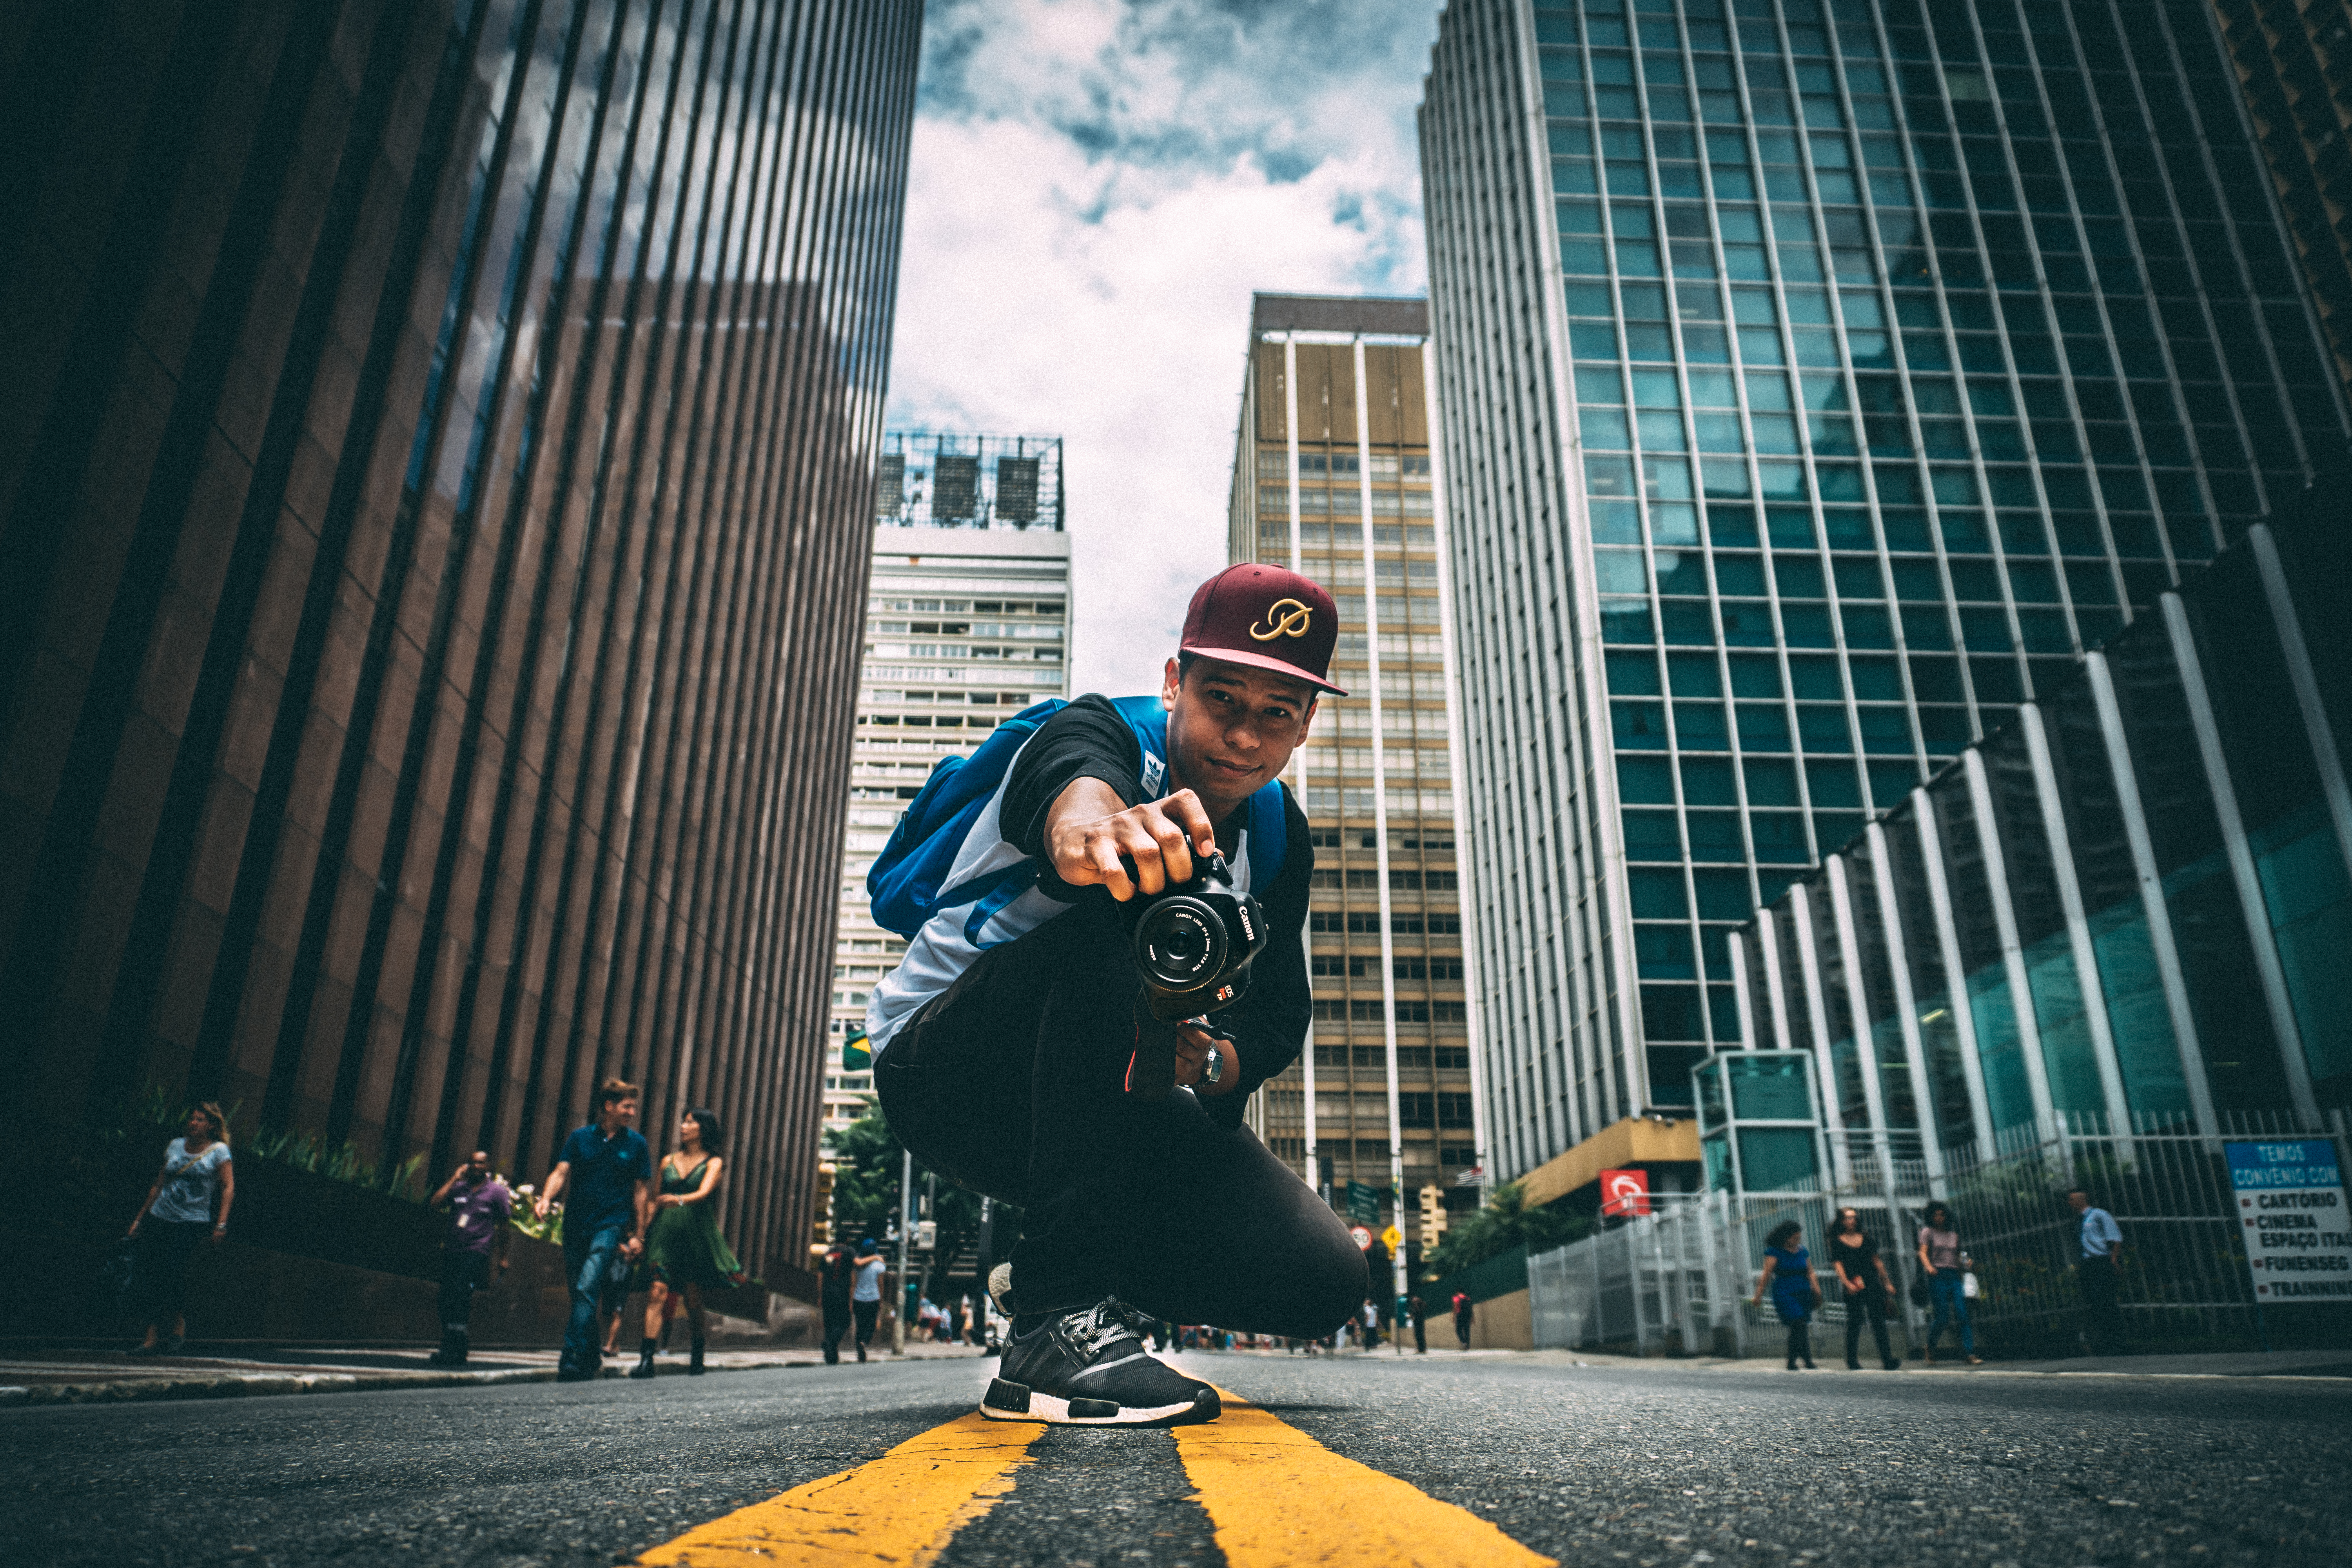 International student on skateboard in city enjoying study abroad